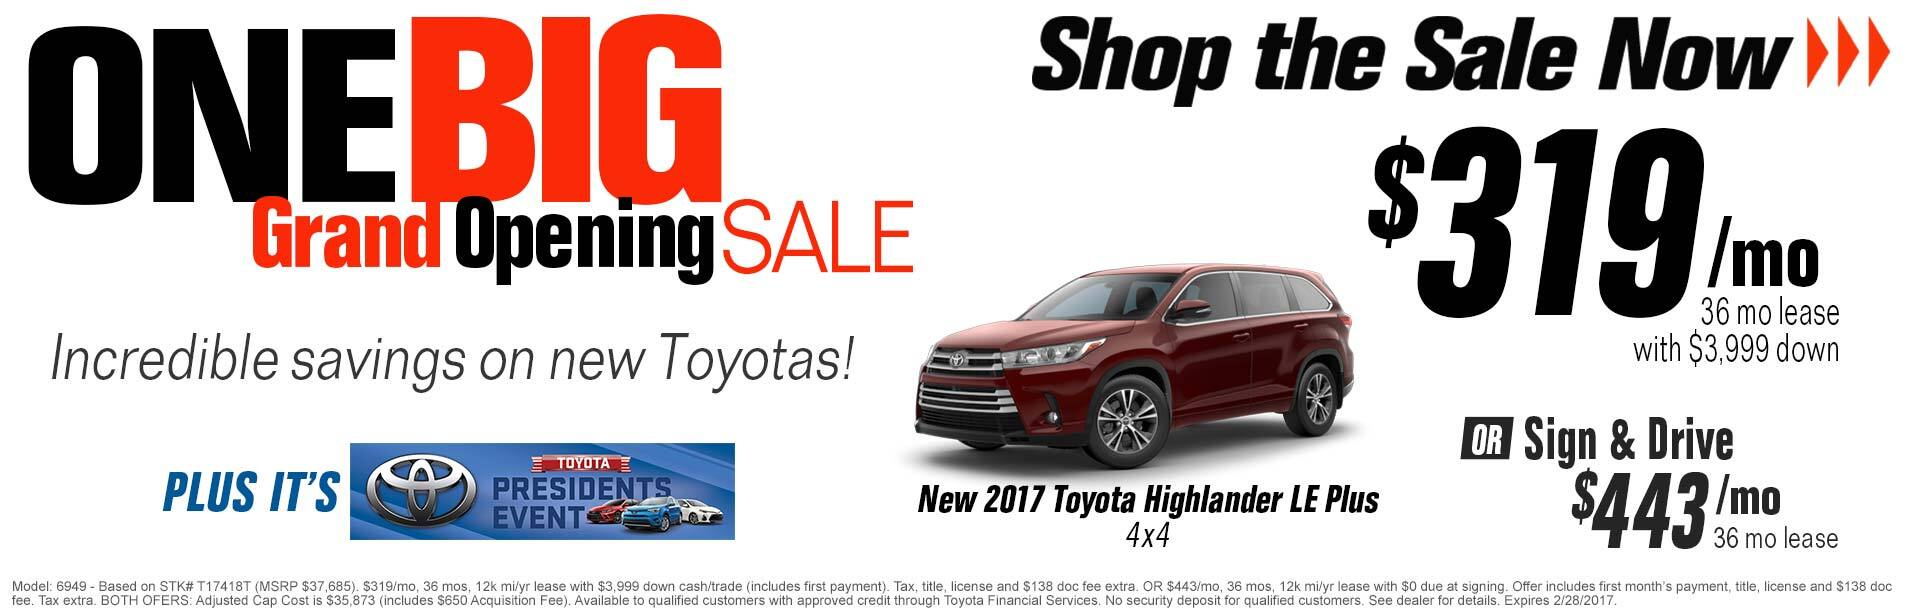 2017 Toyota Highlander LE Plus 4x4